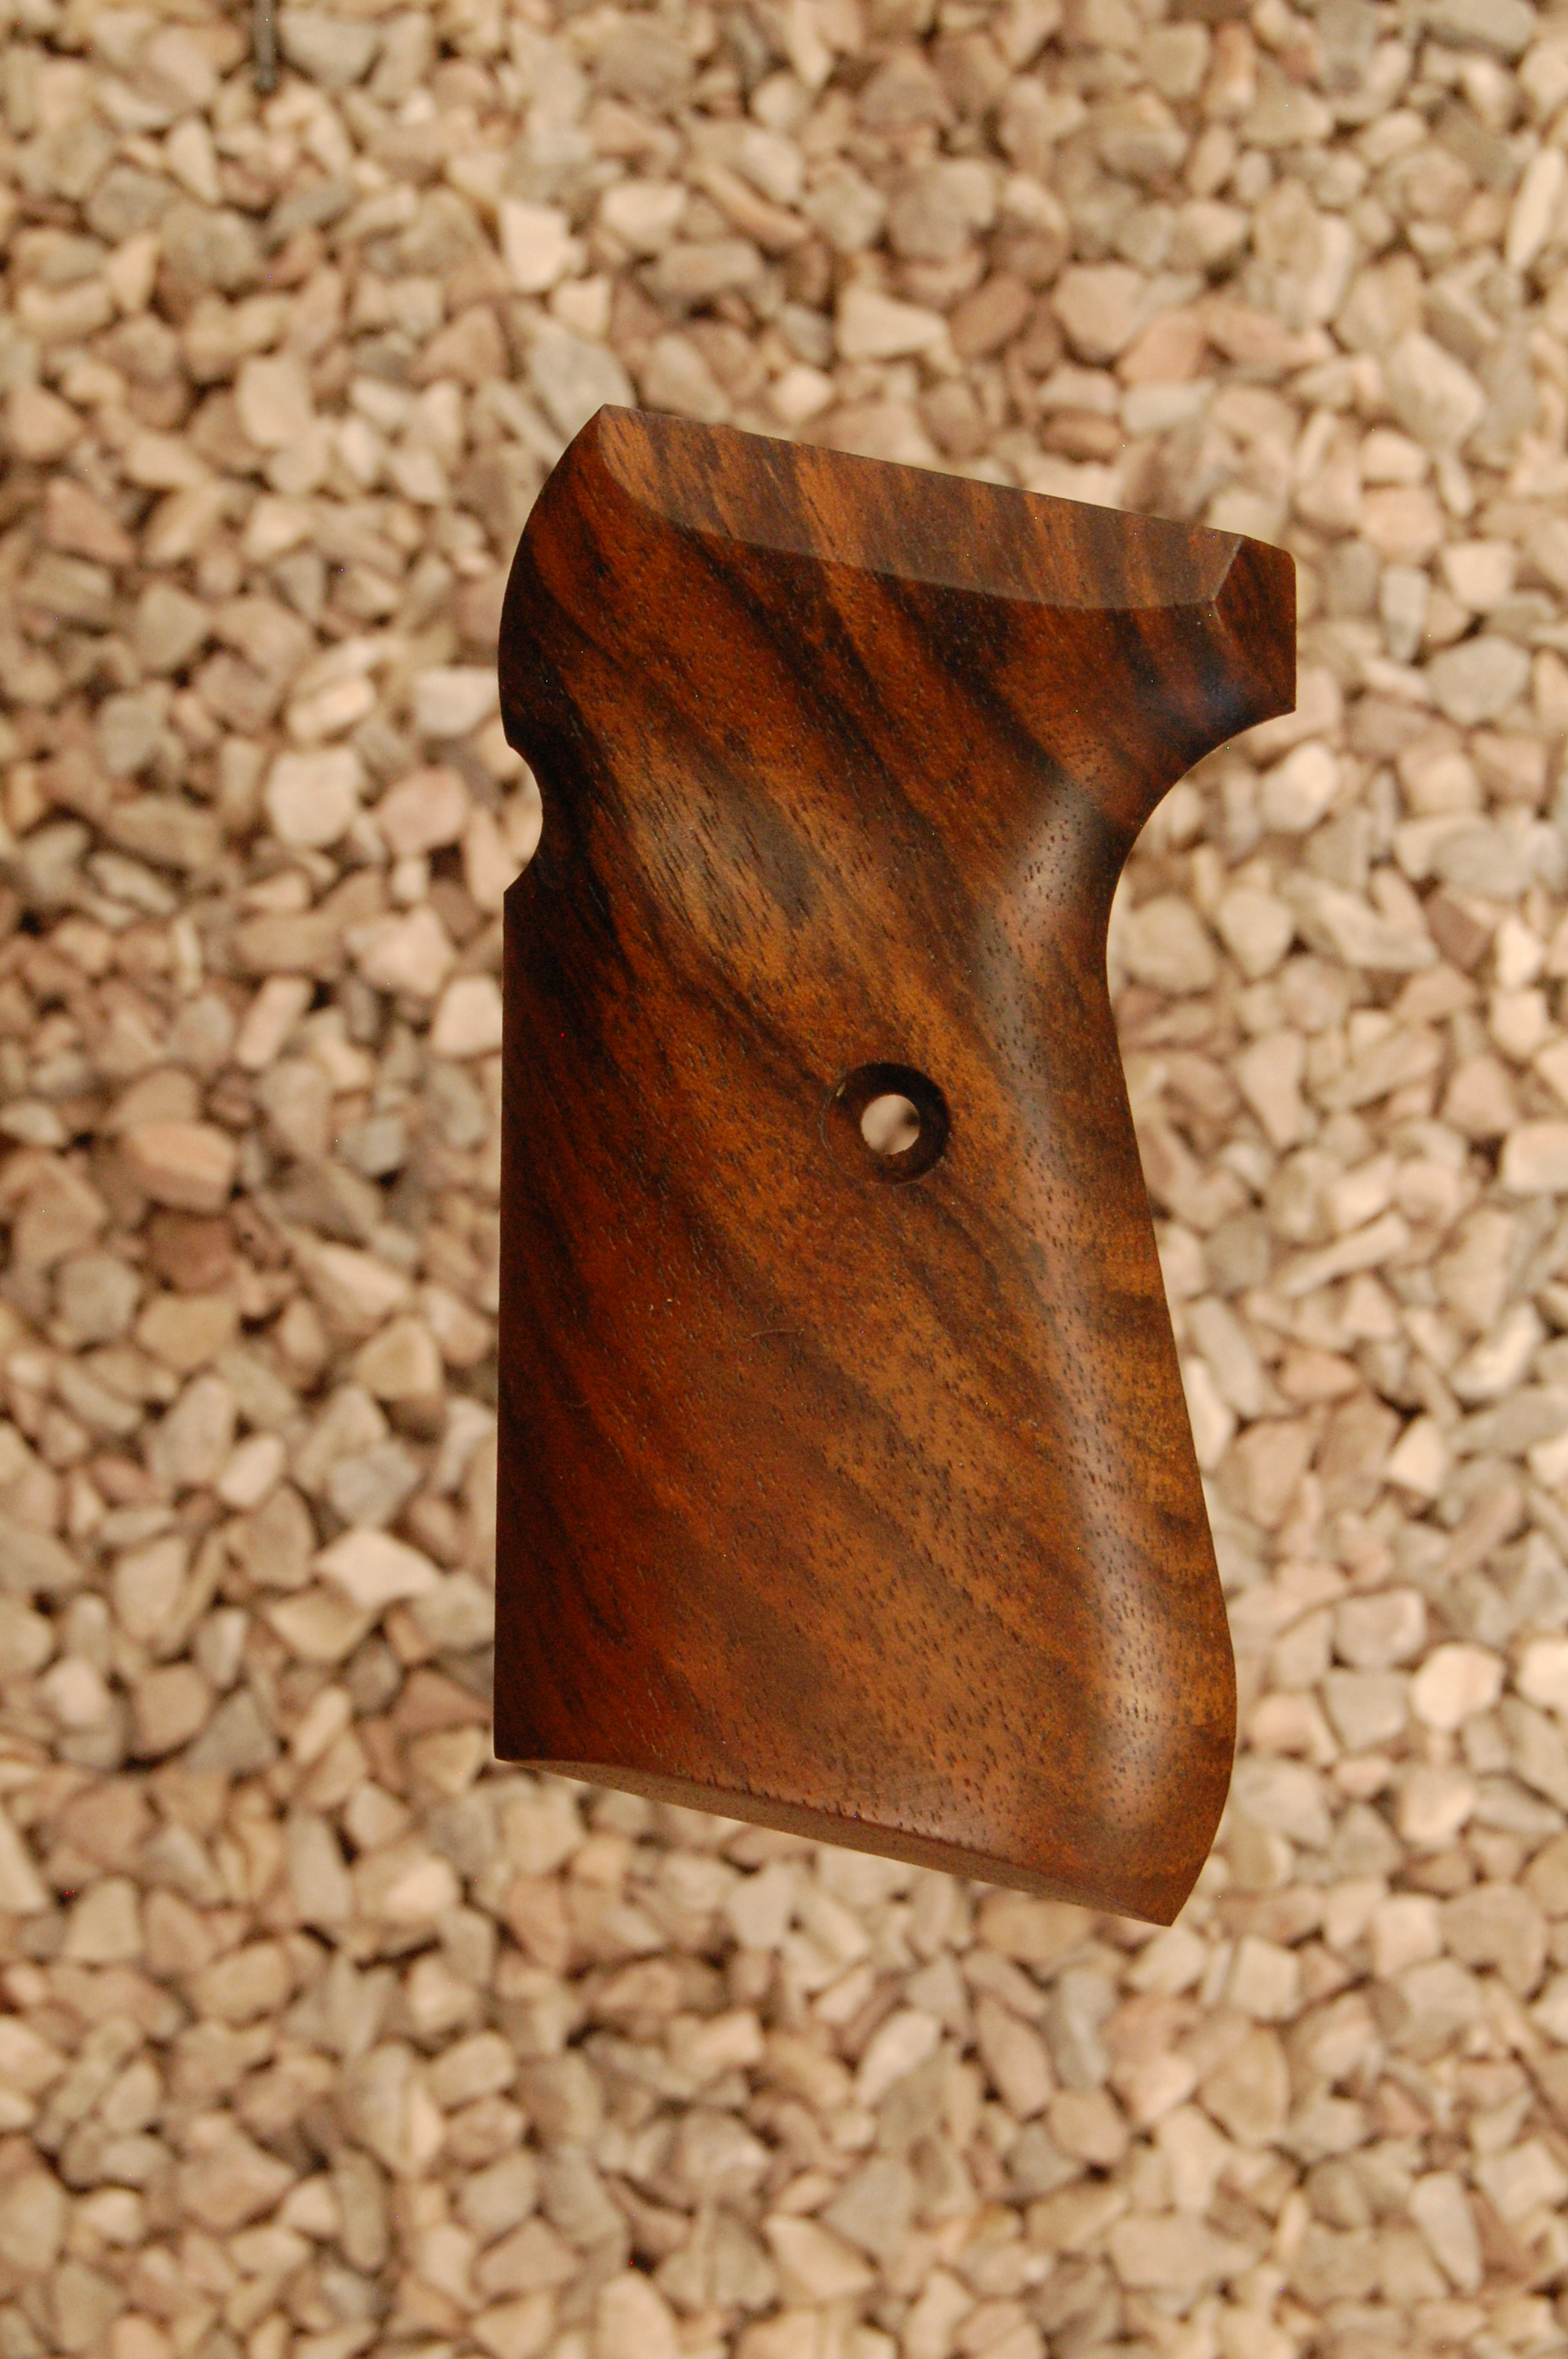 SAUER 38H grips (smooth #110) - full size